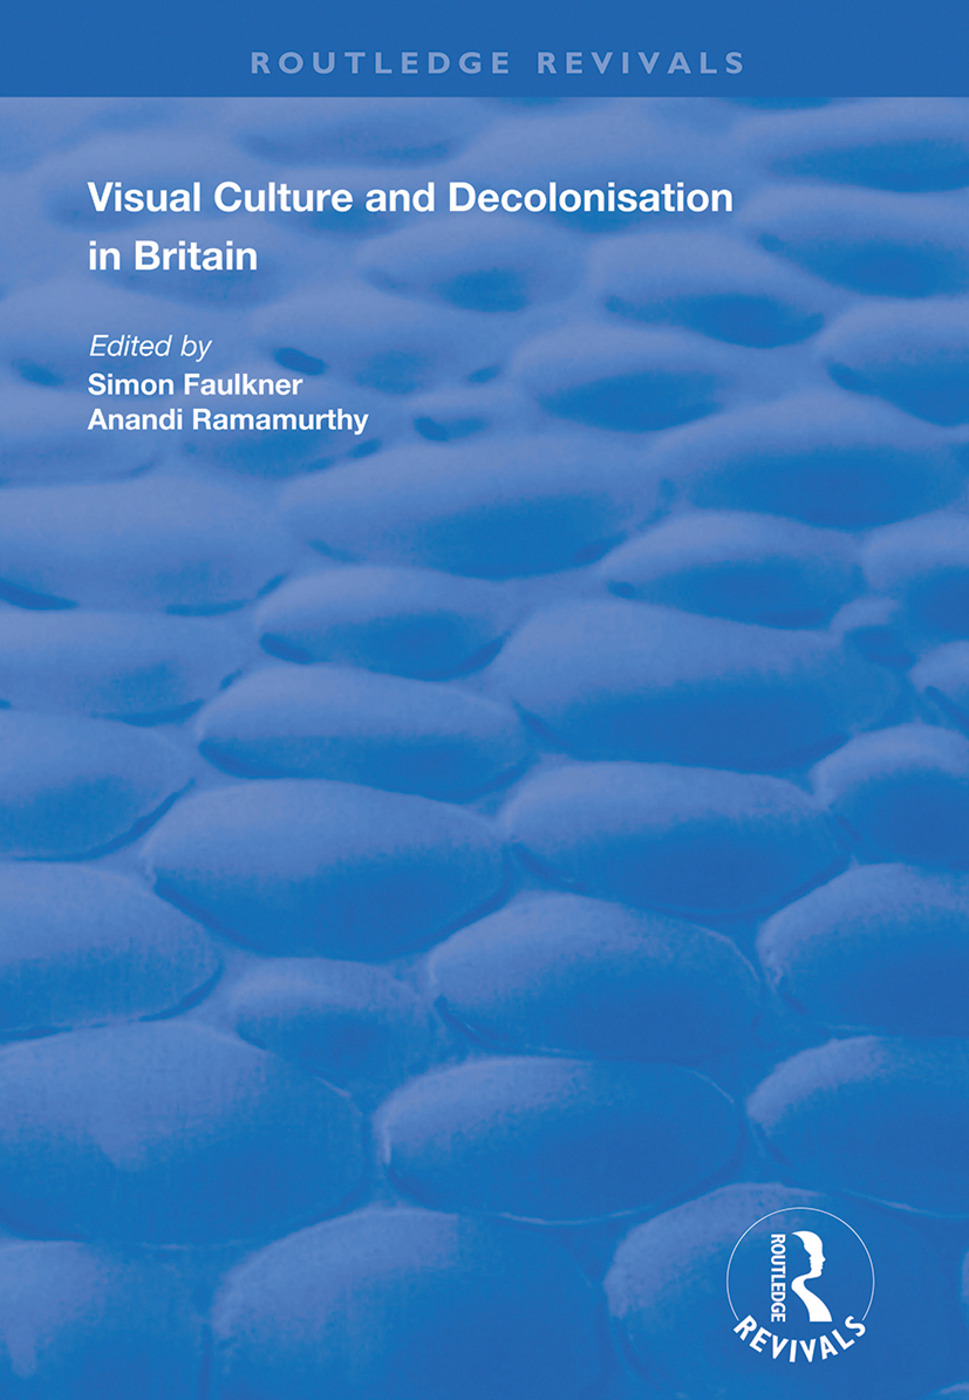 Visual Culture and Decolonisation in Britain book cover